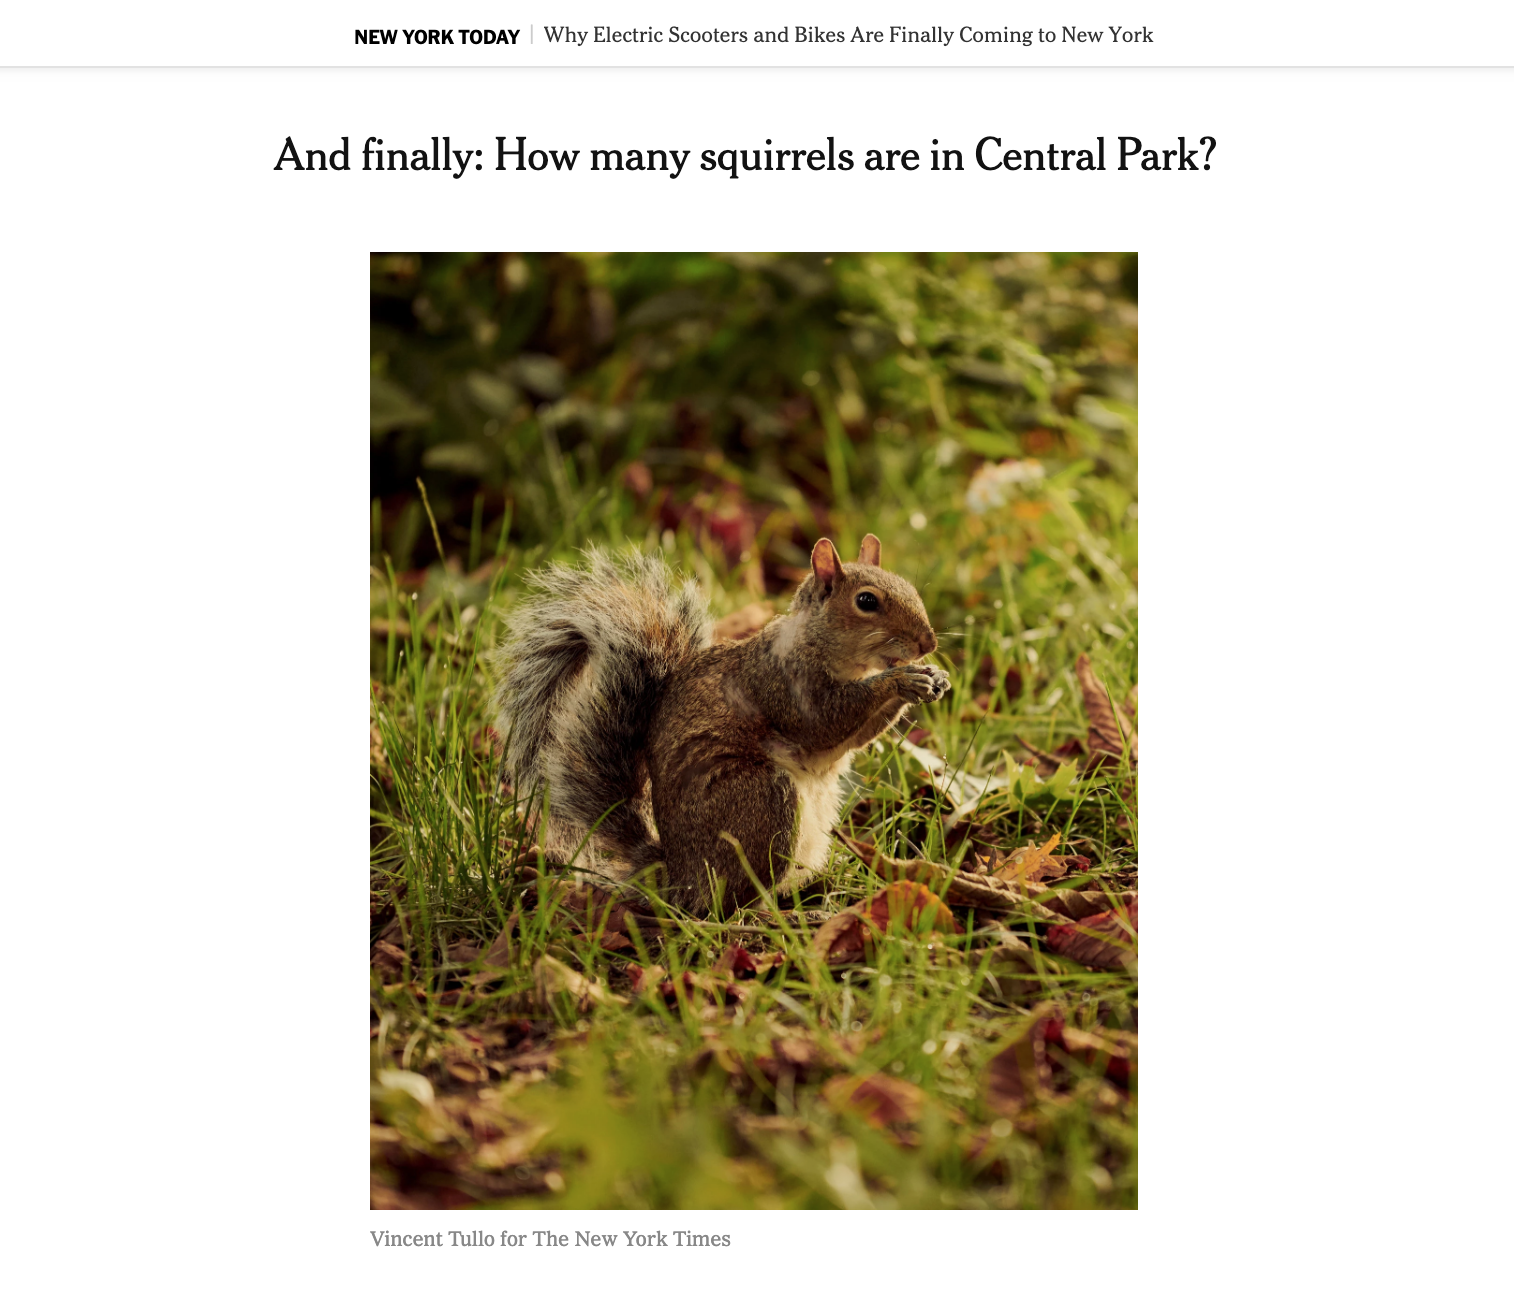 And finally: How many squirrels are in Central Park? - The New York Times